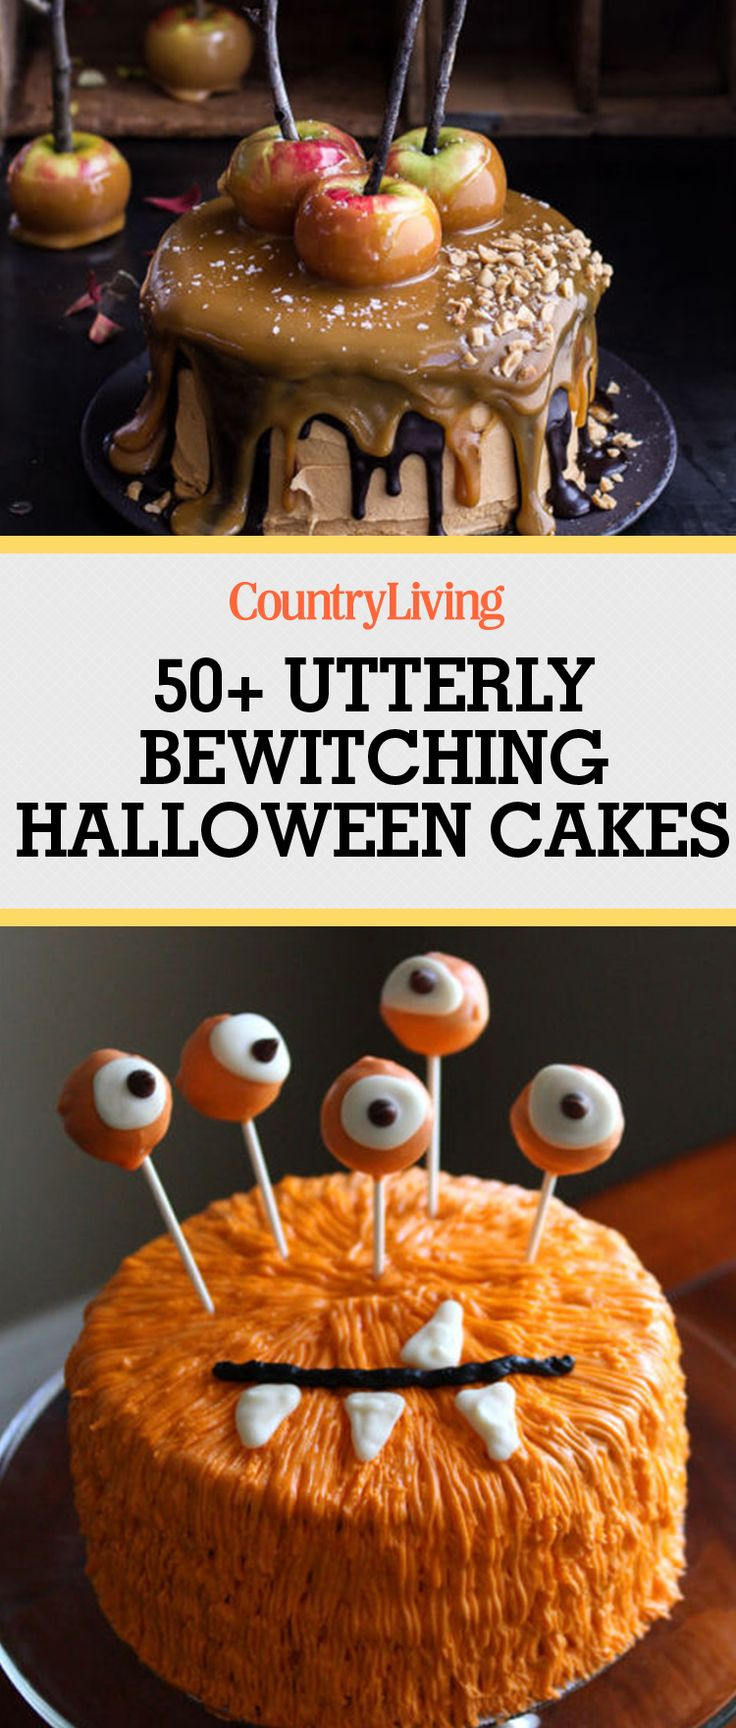 55 easy halloween cakes recipes and halloween cake decorating ideas - Simple Halloween Cake Decorating Ideas